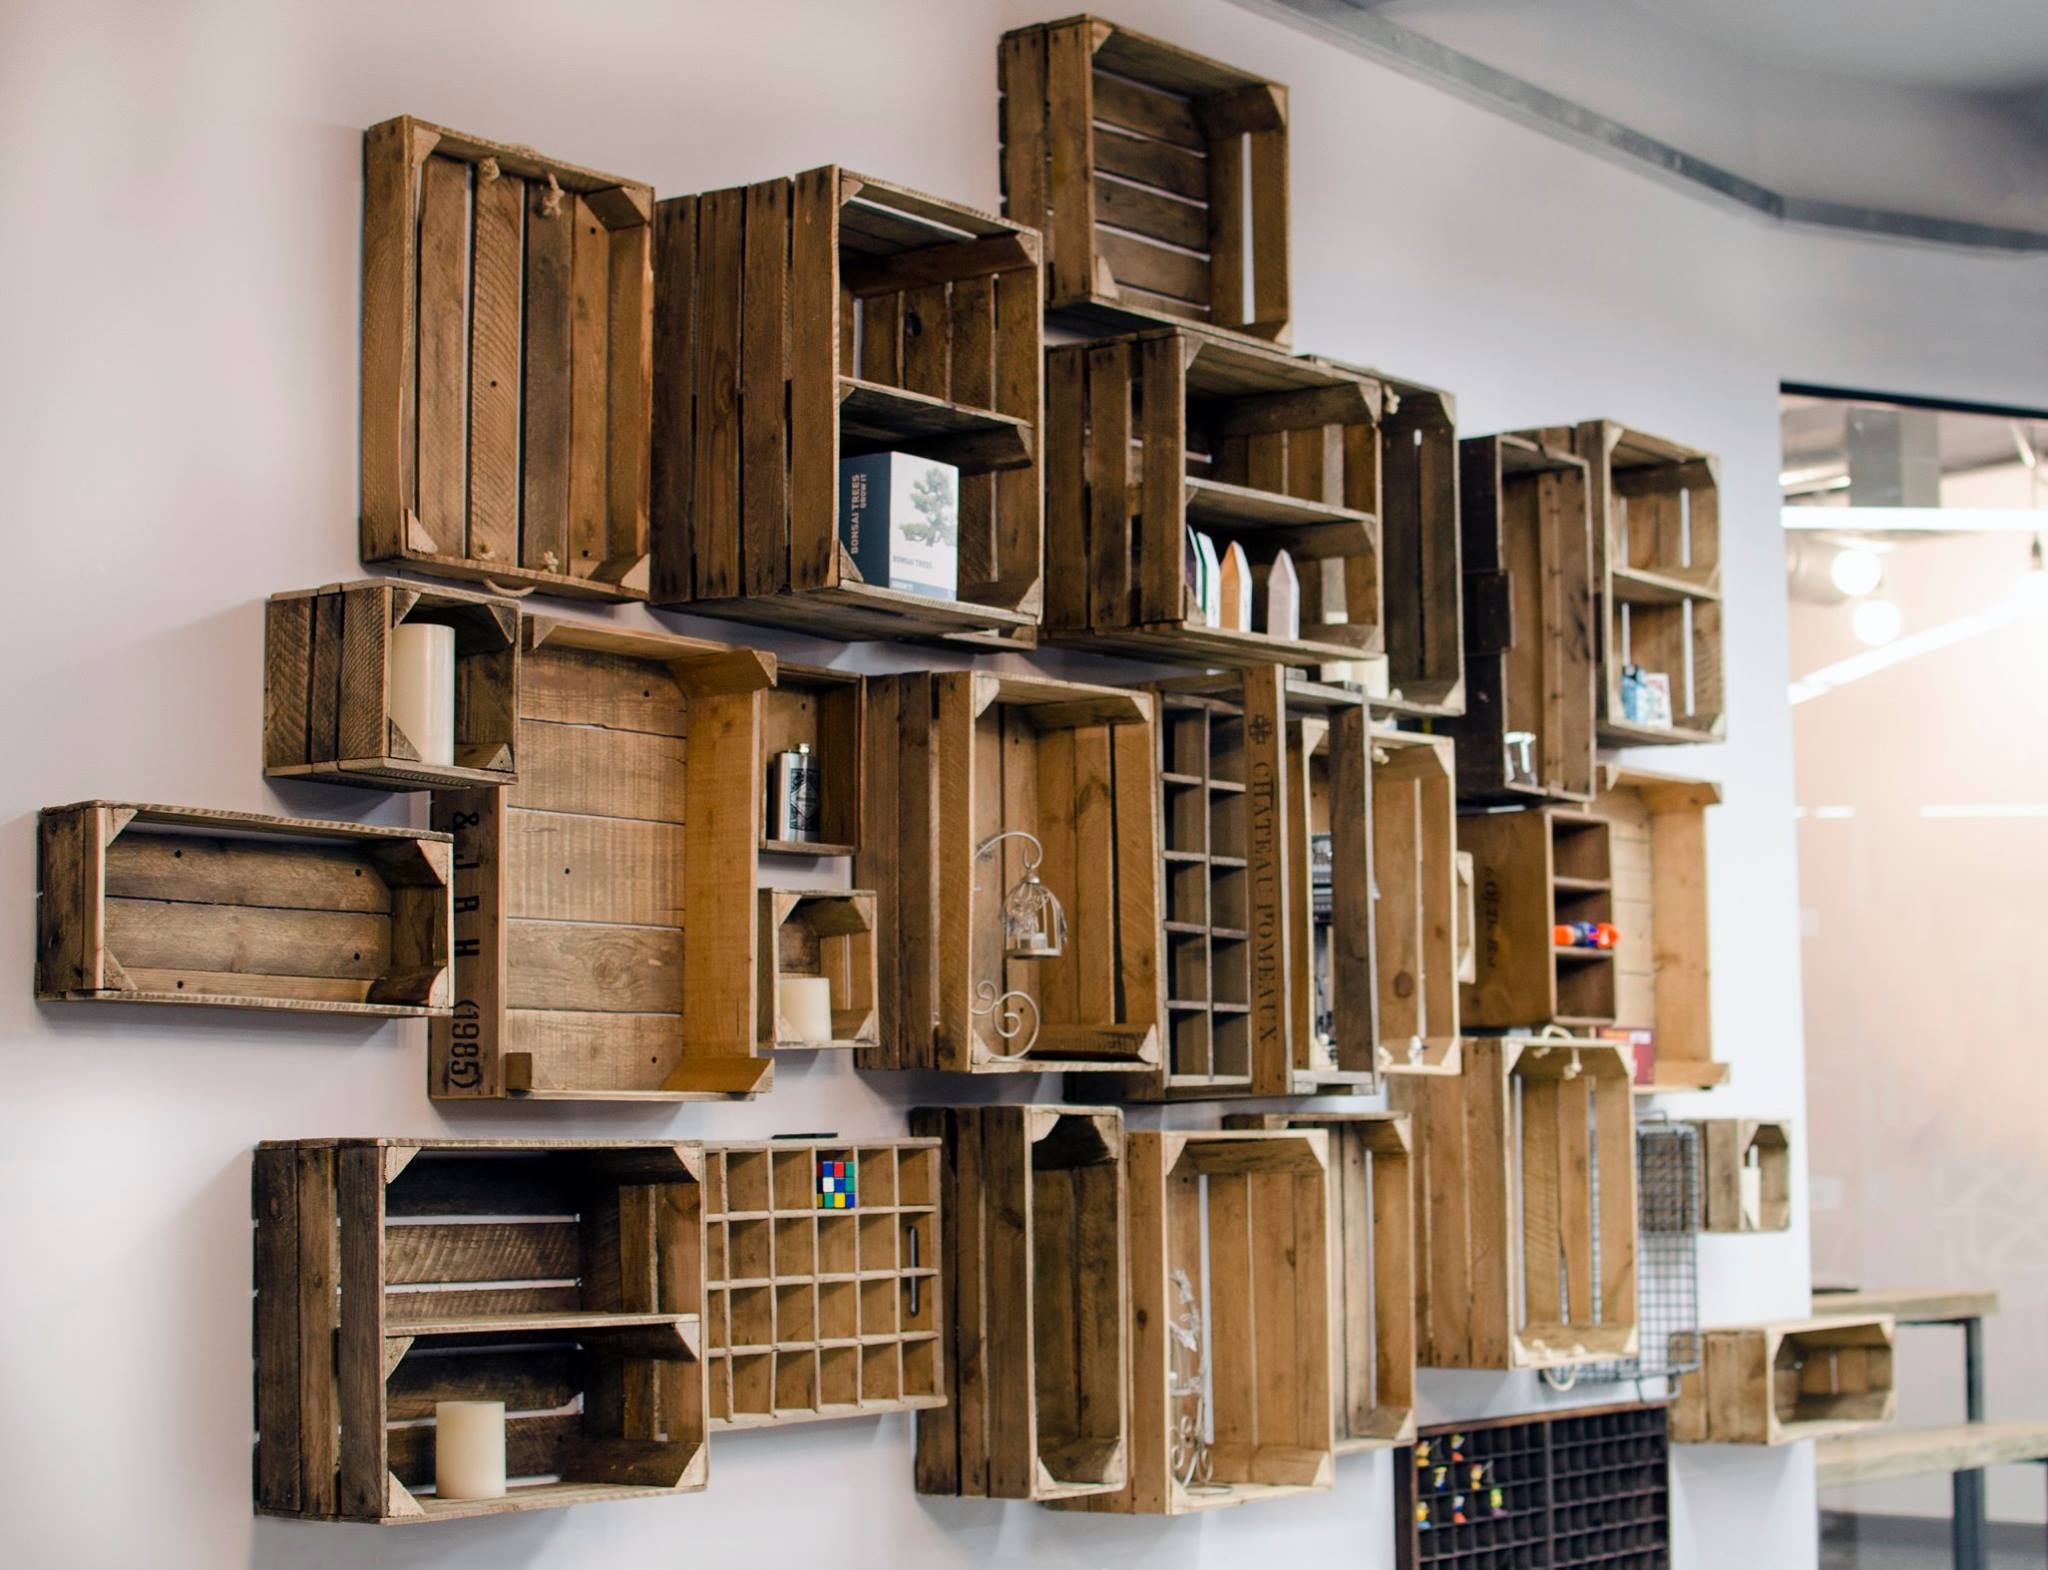 Shelves made from wooden crates